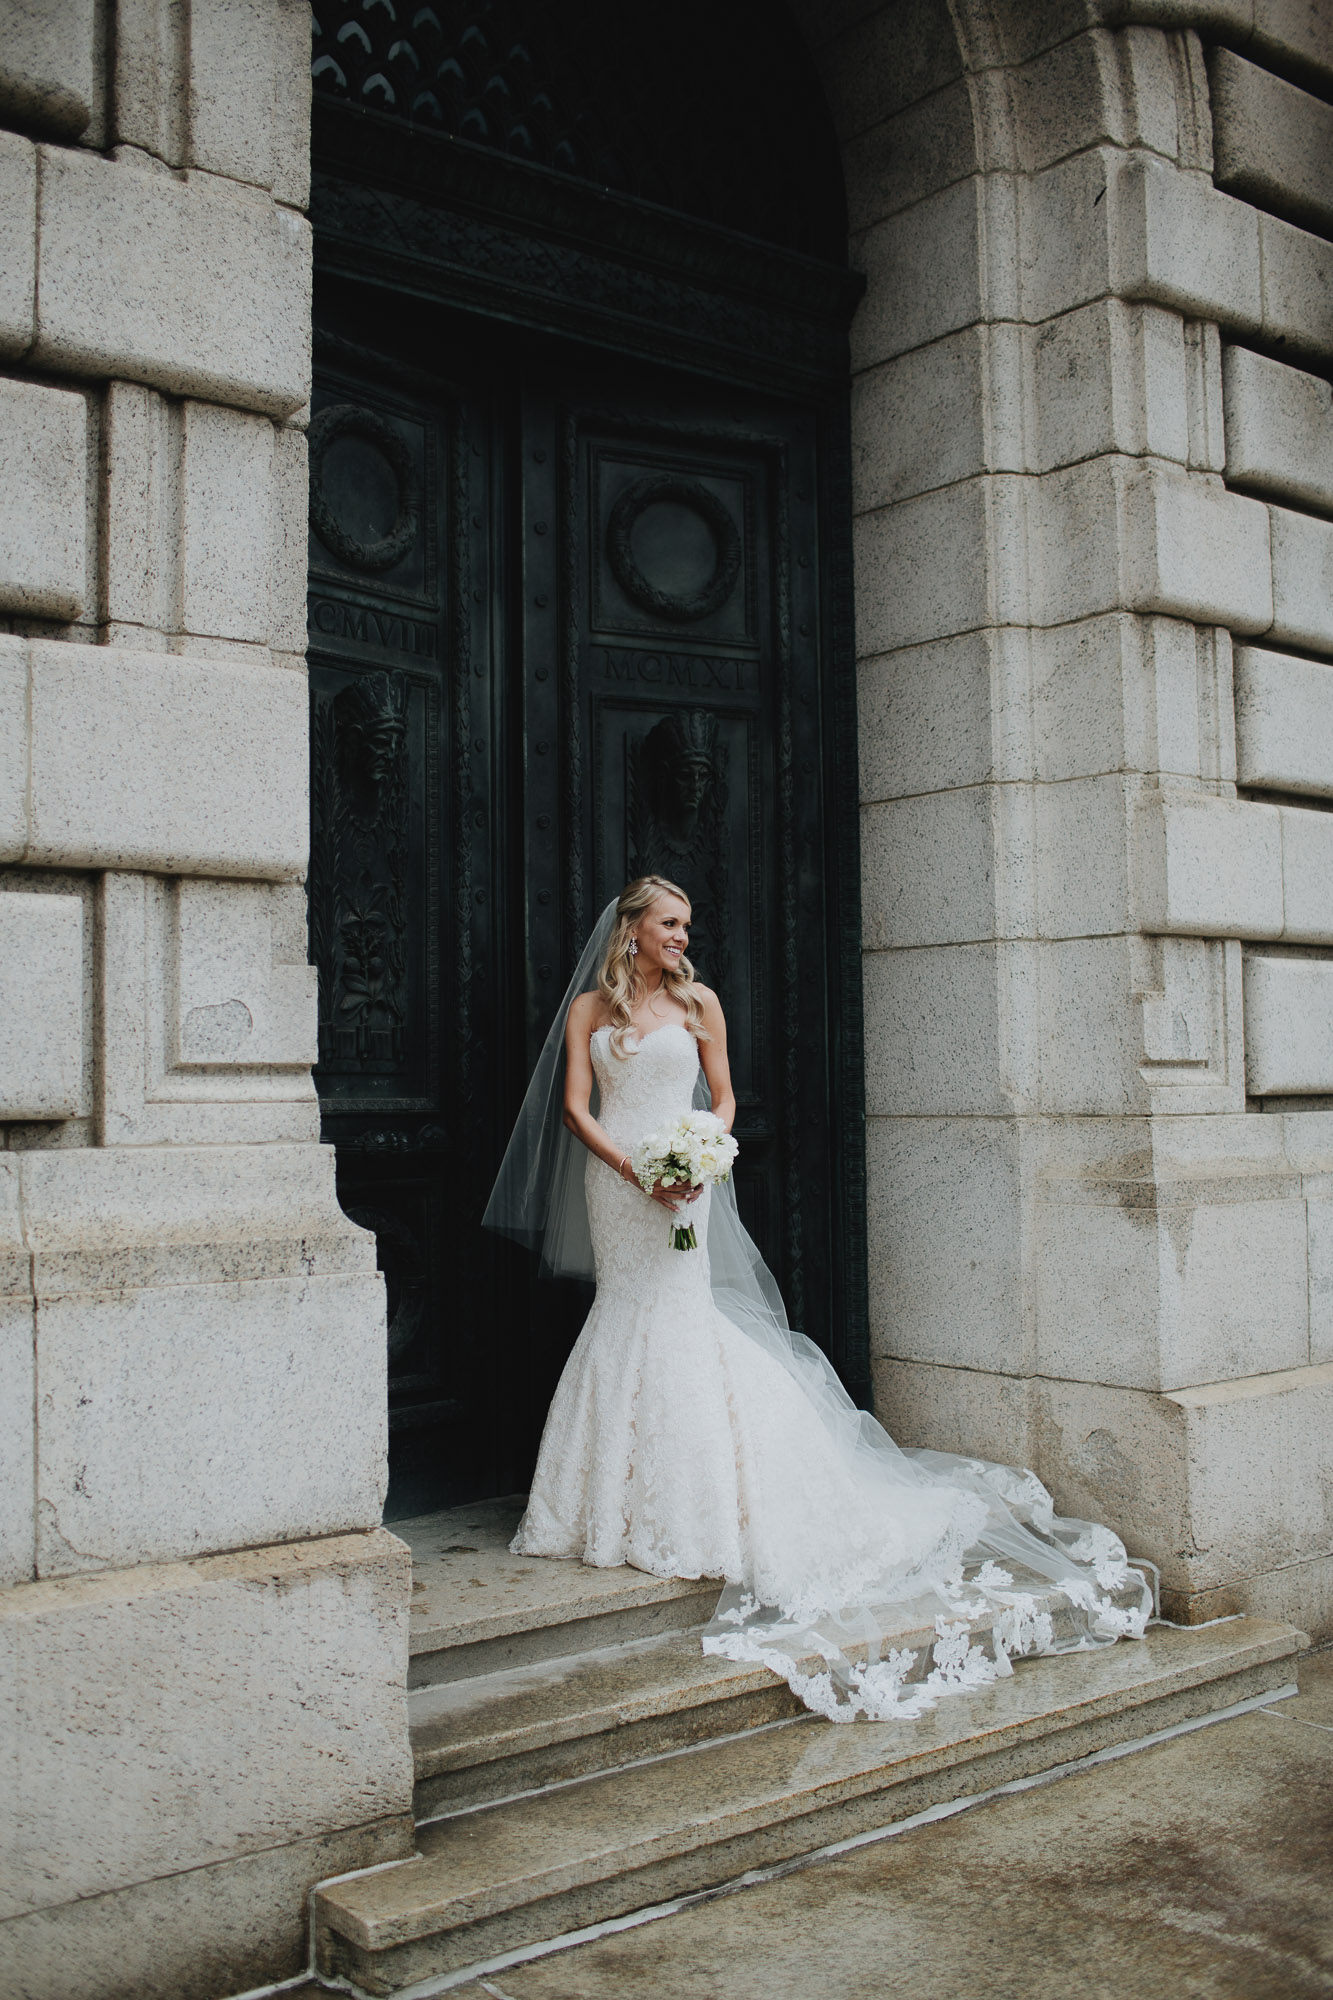 Alana-David-Cleveland-Old-Courthouse-Wedding-133@2x.jpg